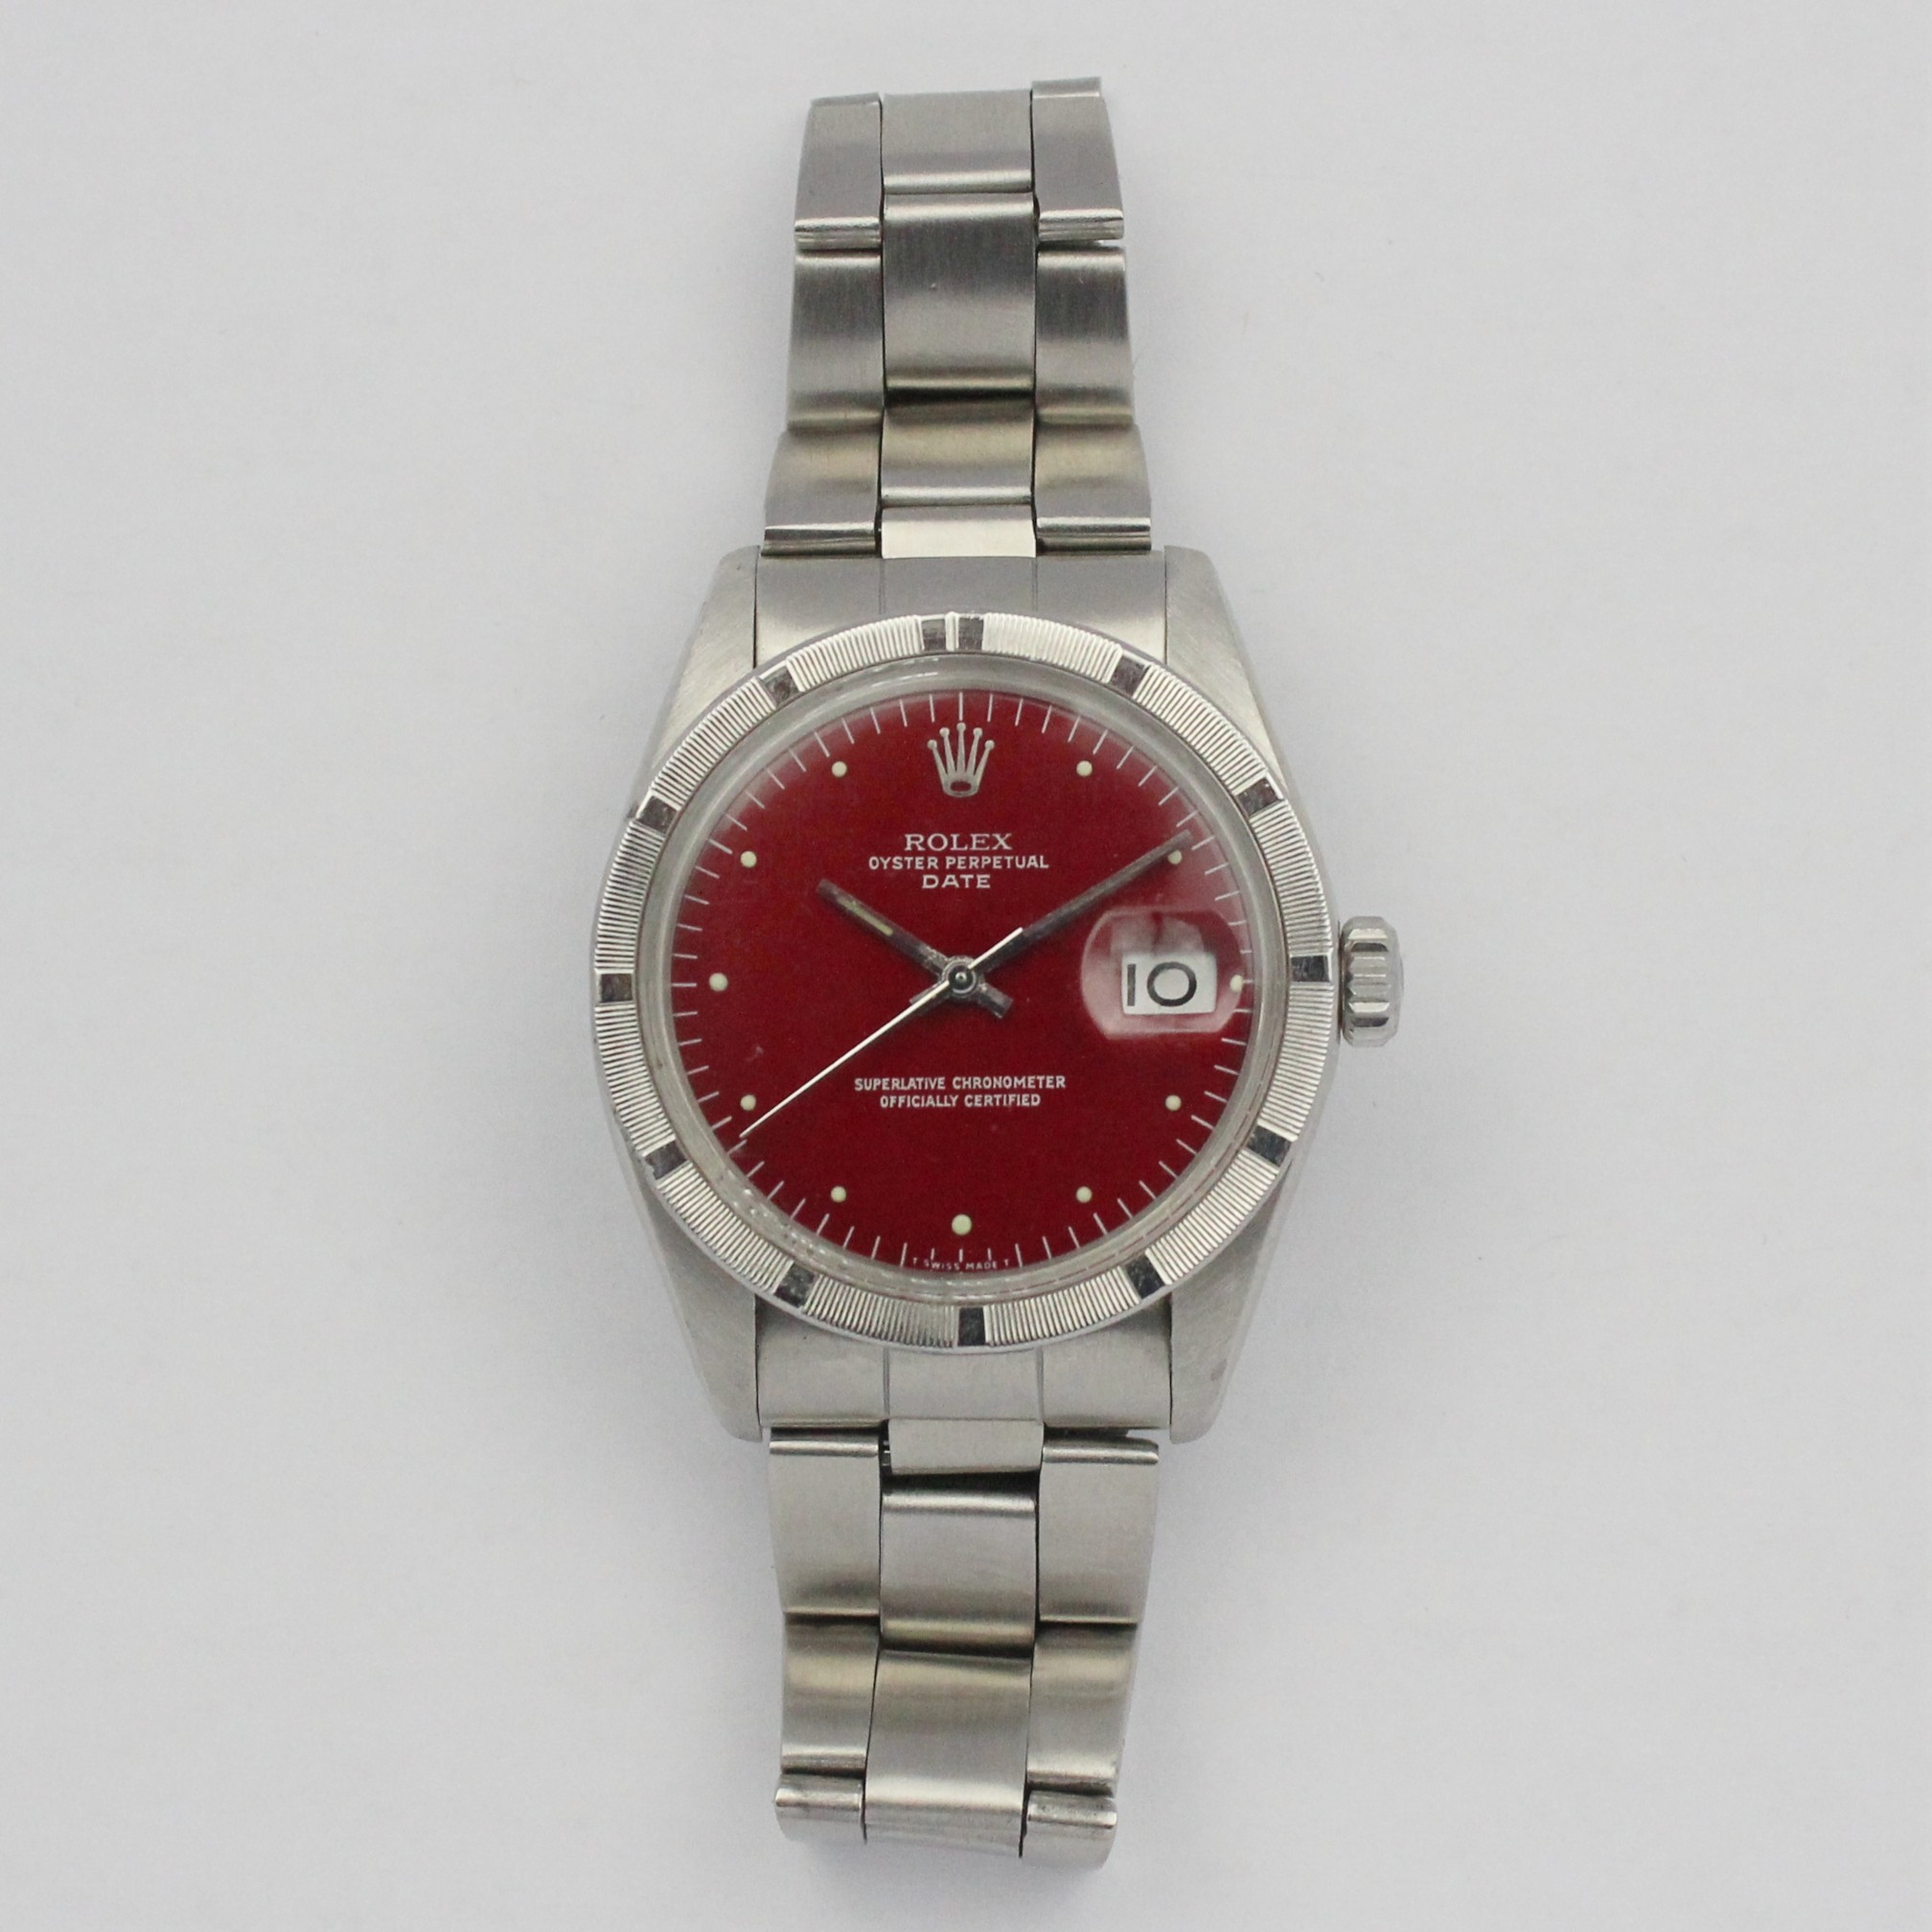 CIRCA 1970S STAINLESS STEEL 34MM ROLEX WITH RED DIAL